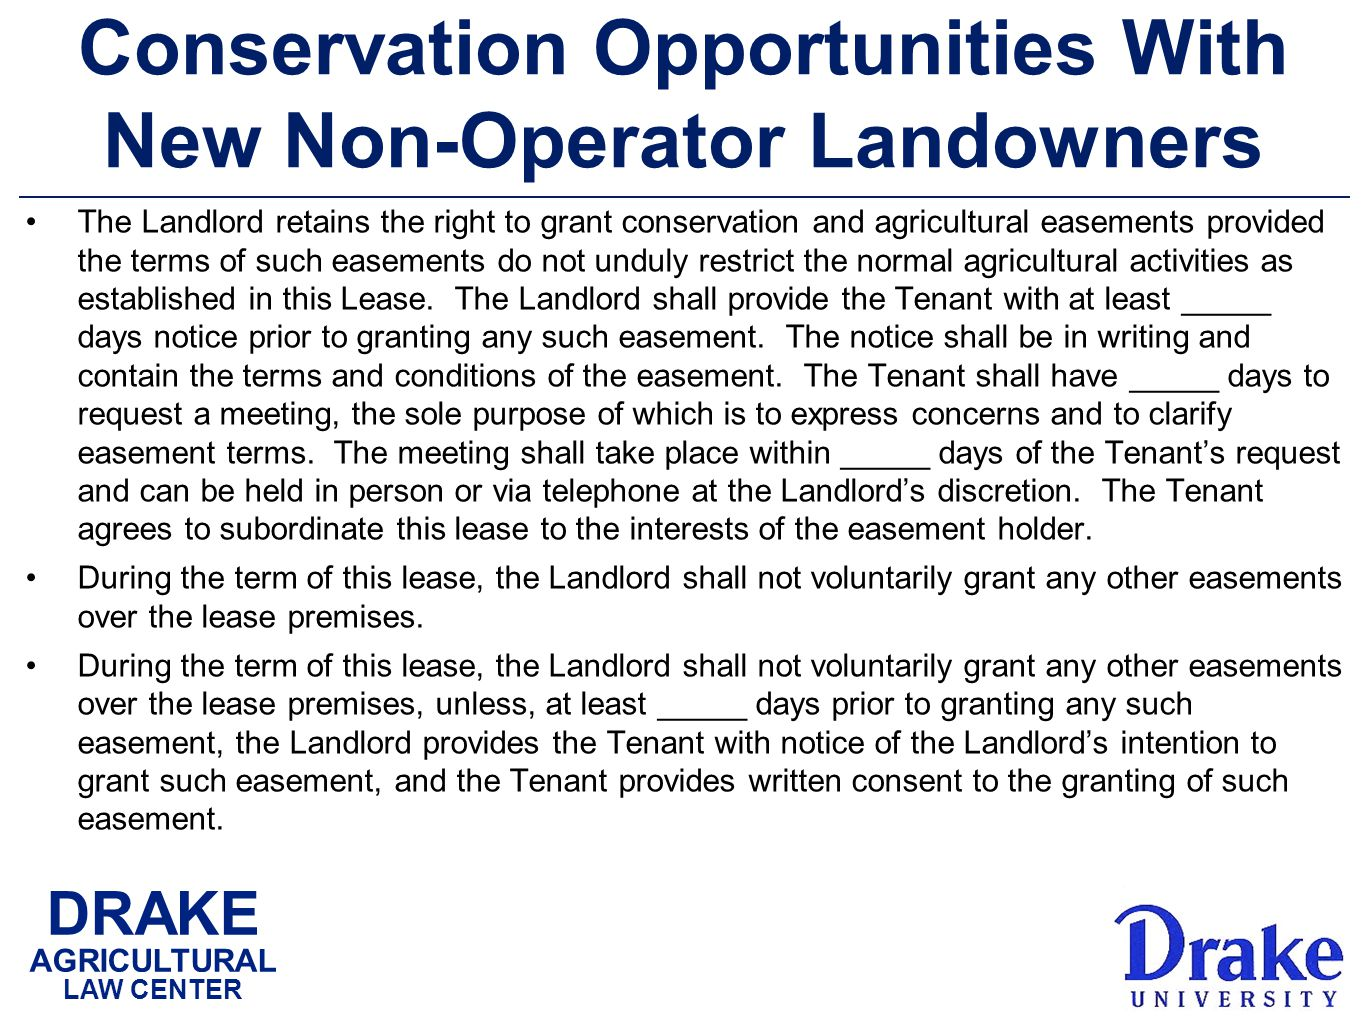 DRAKE AGRICULTURAL LAW CENTER Conservation Opportunities With New Non-Operator Landowners The Landlord retains the right to grant conservation and agricultural easements provided the terms of such easements do not unduly restrict the normal agricultural activities as established in this Lease.